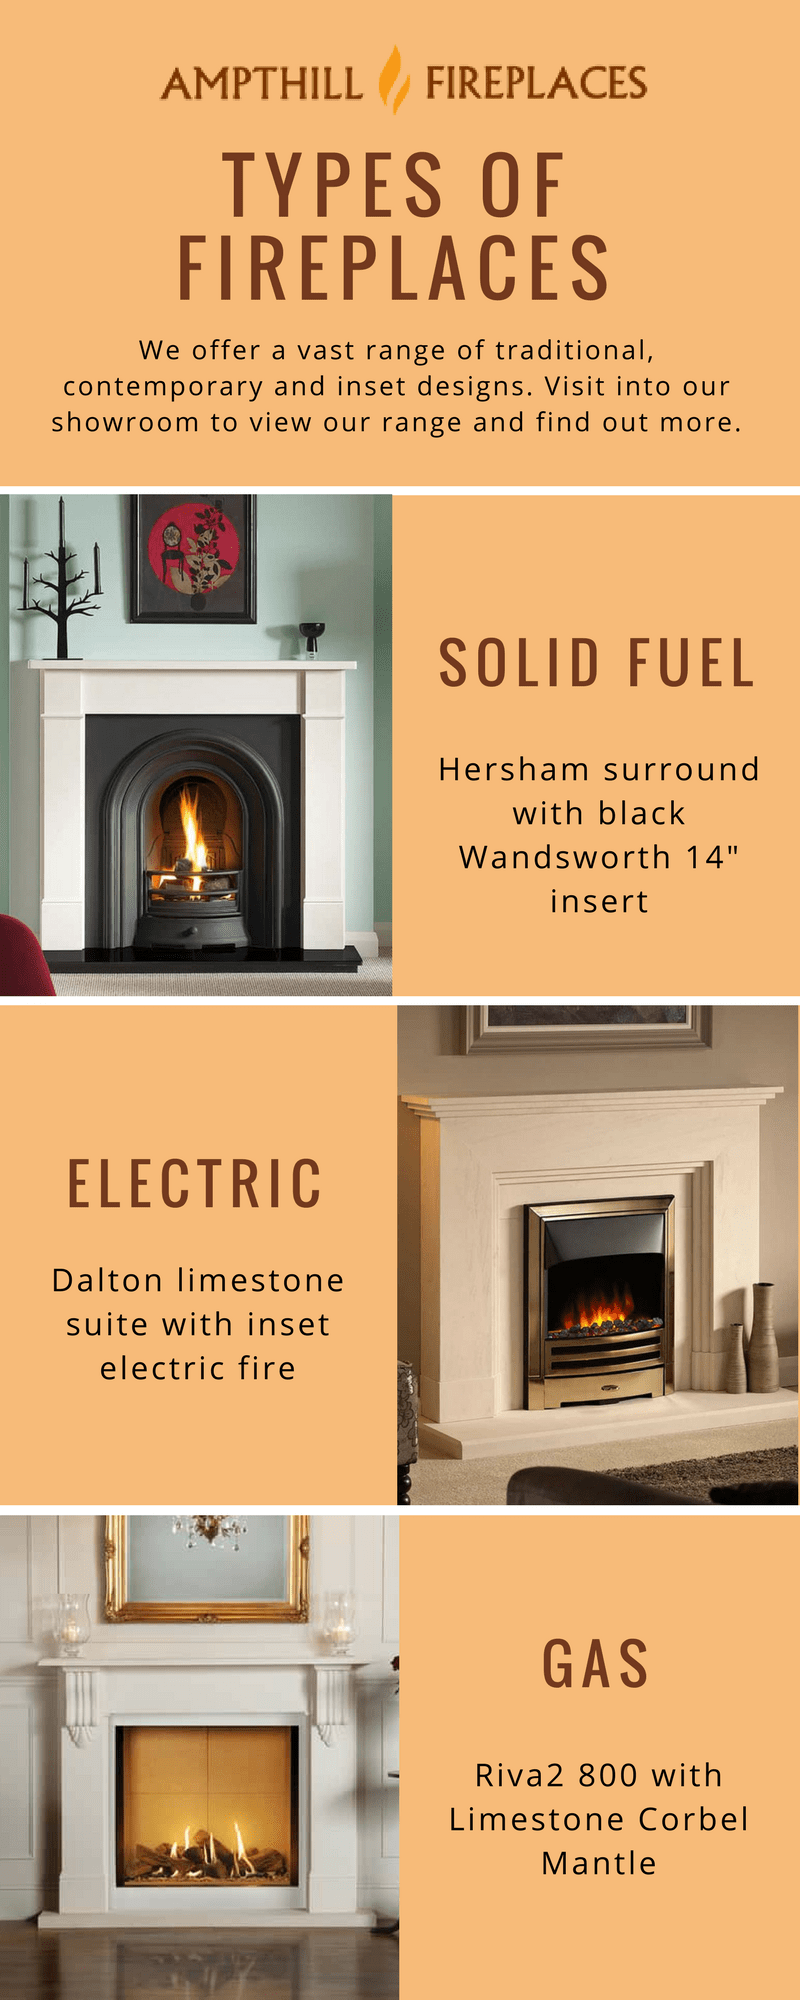 Different Types of Fireplaces